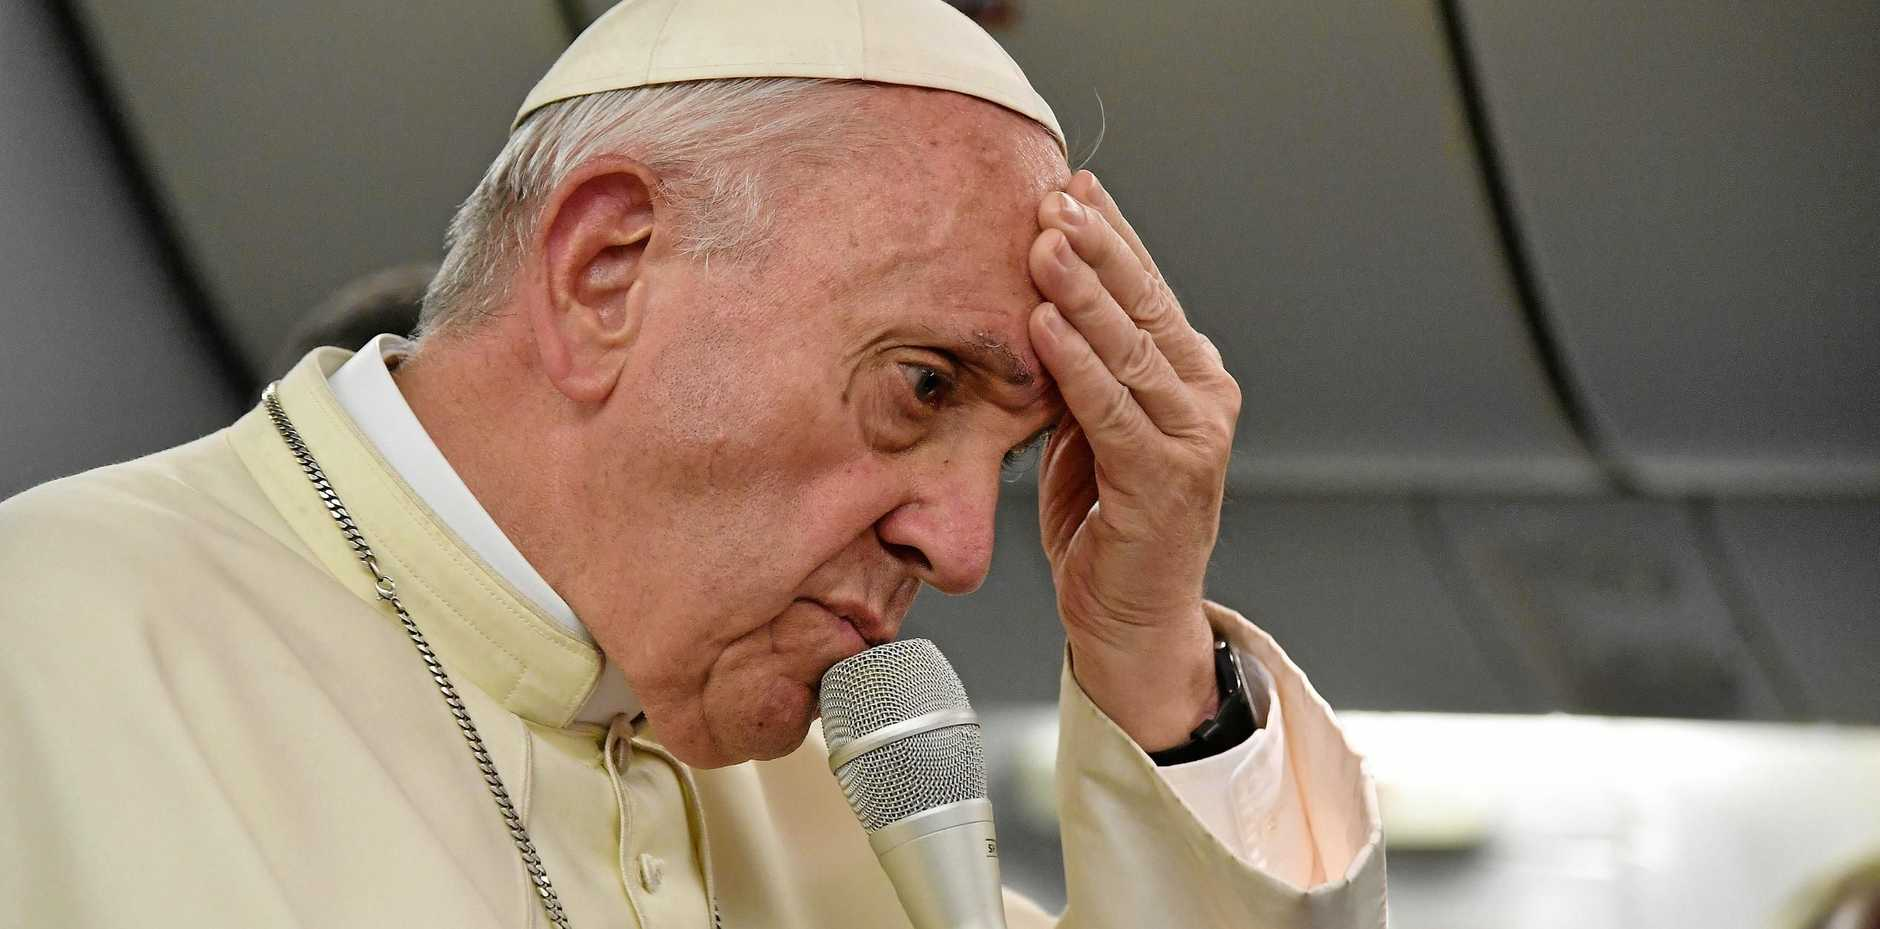 Pope Francis speaks to journalists aboard his flight to Italy at the end of his journey to South America.